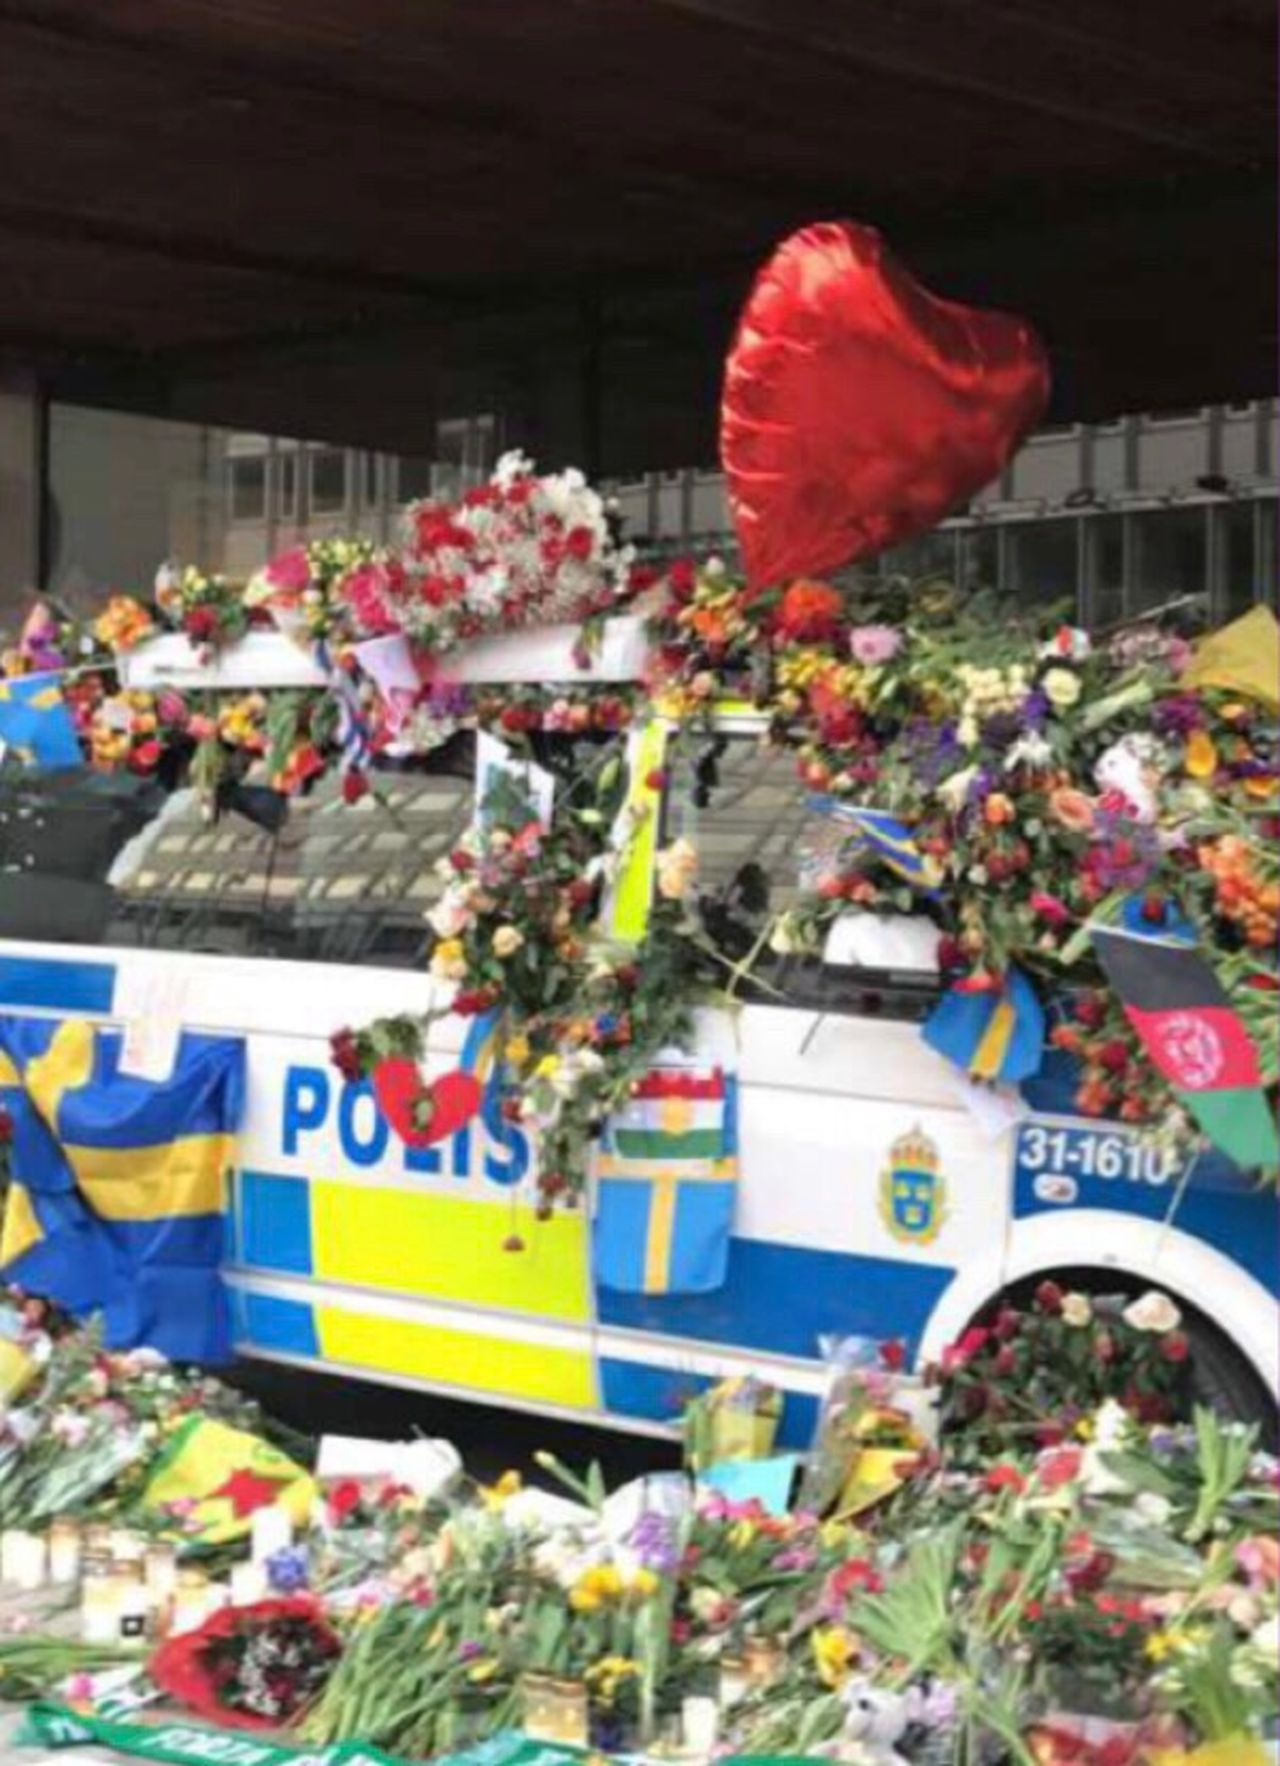 Terrorist Stockholm 7 / 4-2017🇸🇪💔 AWFULLY ! prayforstockholm🇸🇪🙏❤️🌹 Taking Photos Street First Eyeem Photo Walking Around My Thoughts Go To The Victims❤️✨❤️✨ The Swedish police are amazing🙏❤️🇸🇪🌹🌷🌹❤️